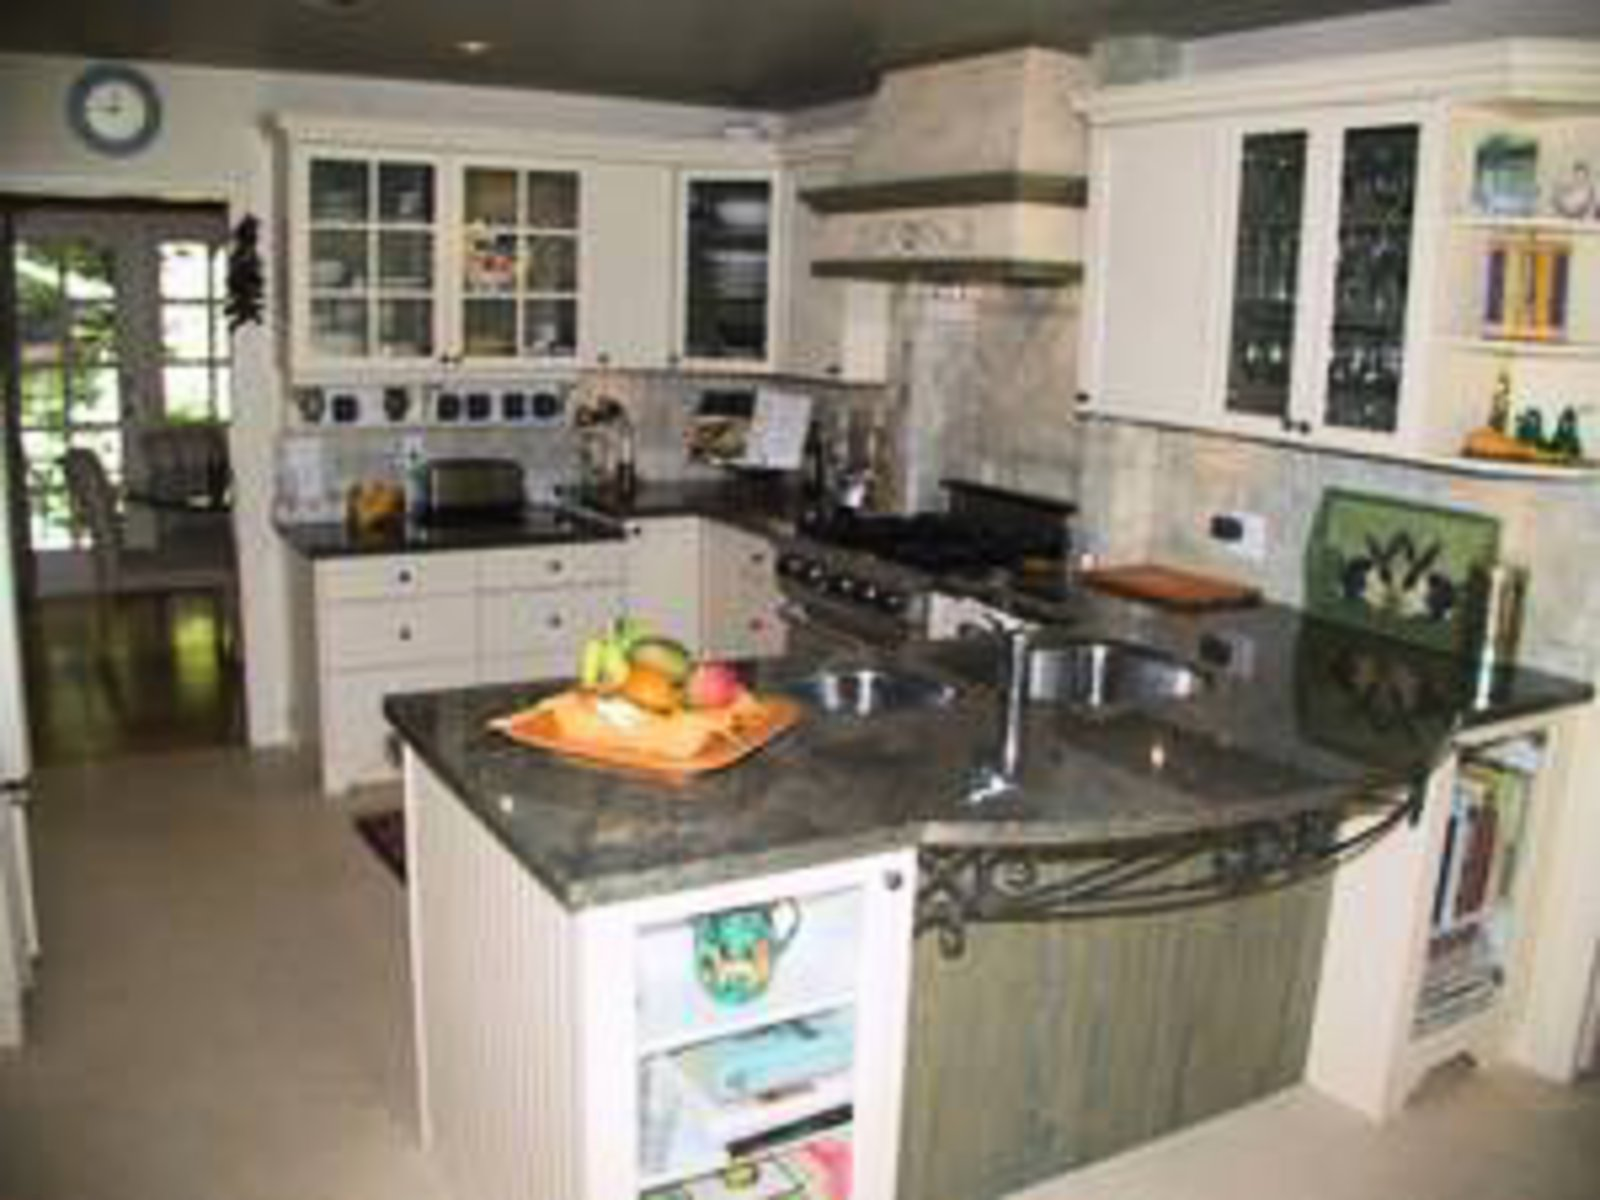 Gourmet Kitchen Top of the line appliances- subzerom Mielle, granite countertops